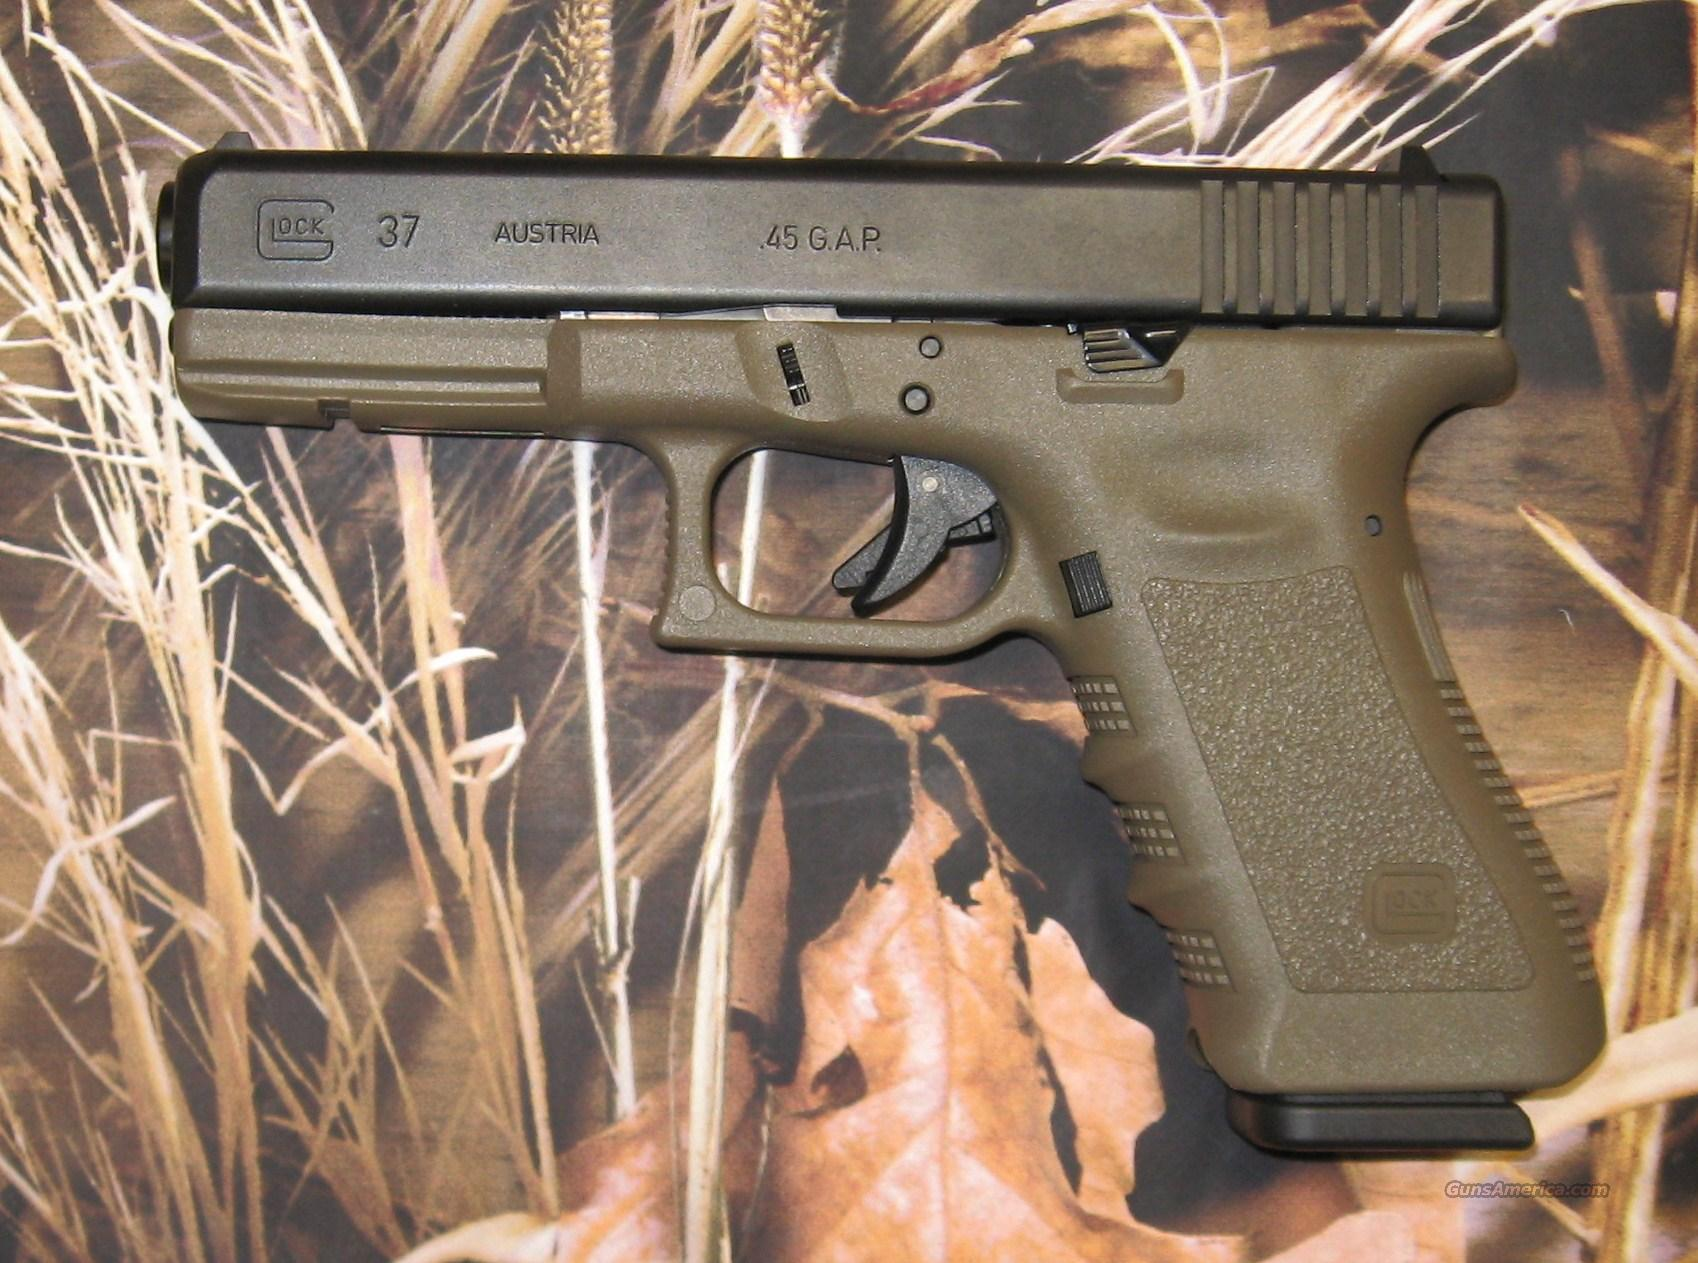 Glock 37 Black/OD green .45 GAP Used  Guns > Pistols > Glock Pistols > 38/39